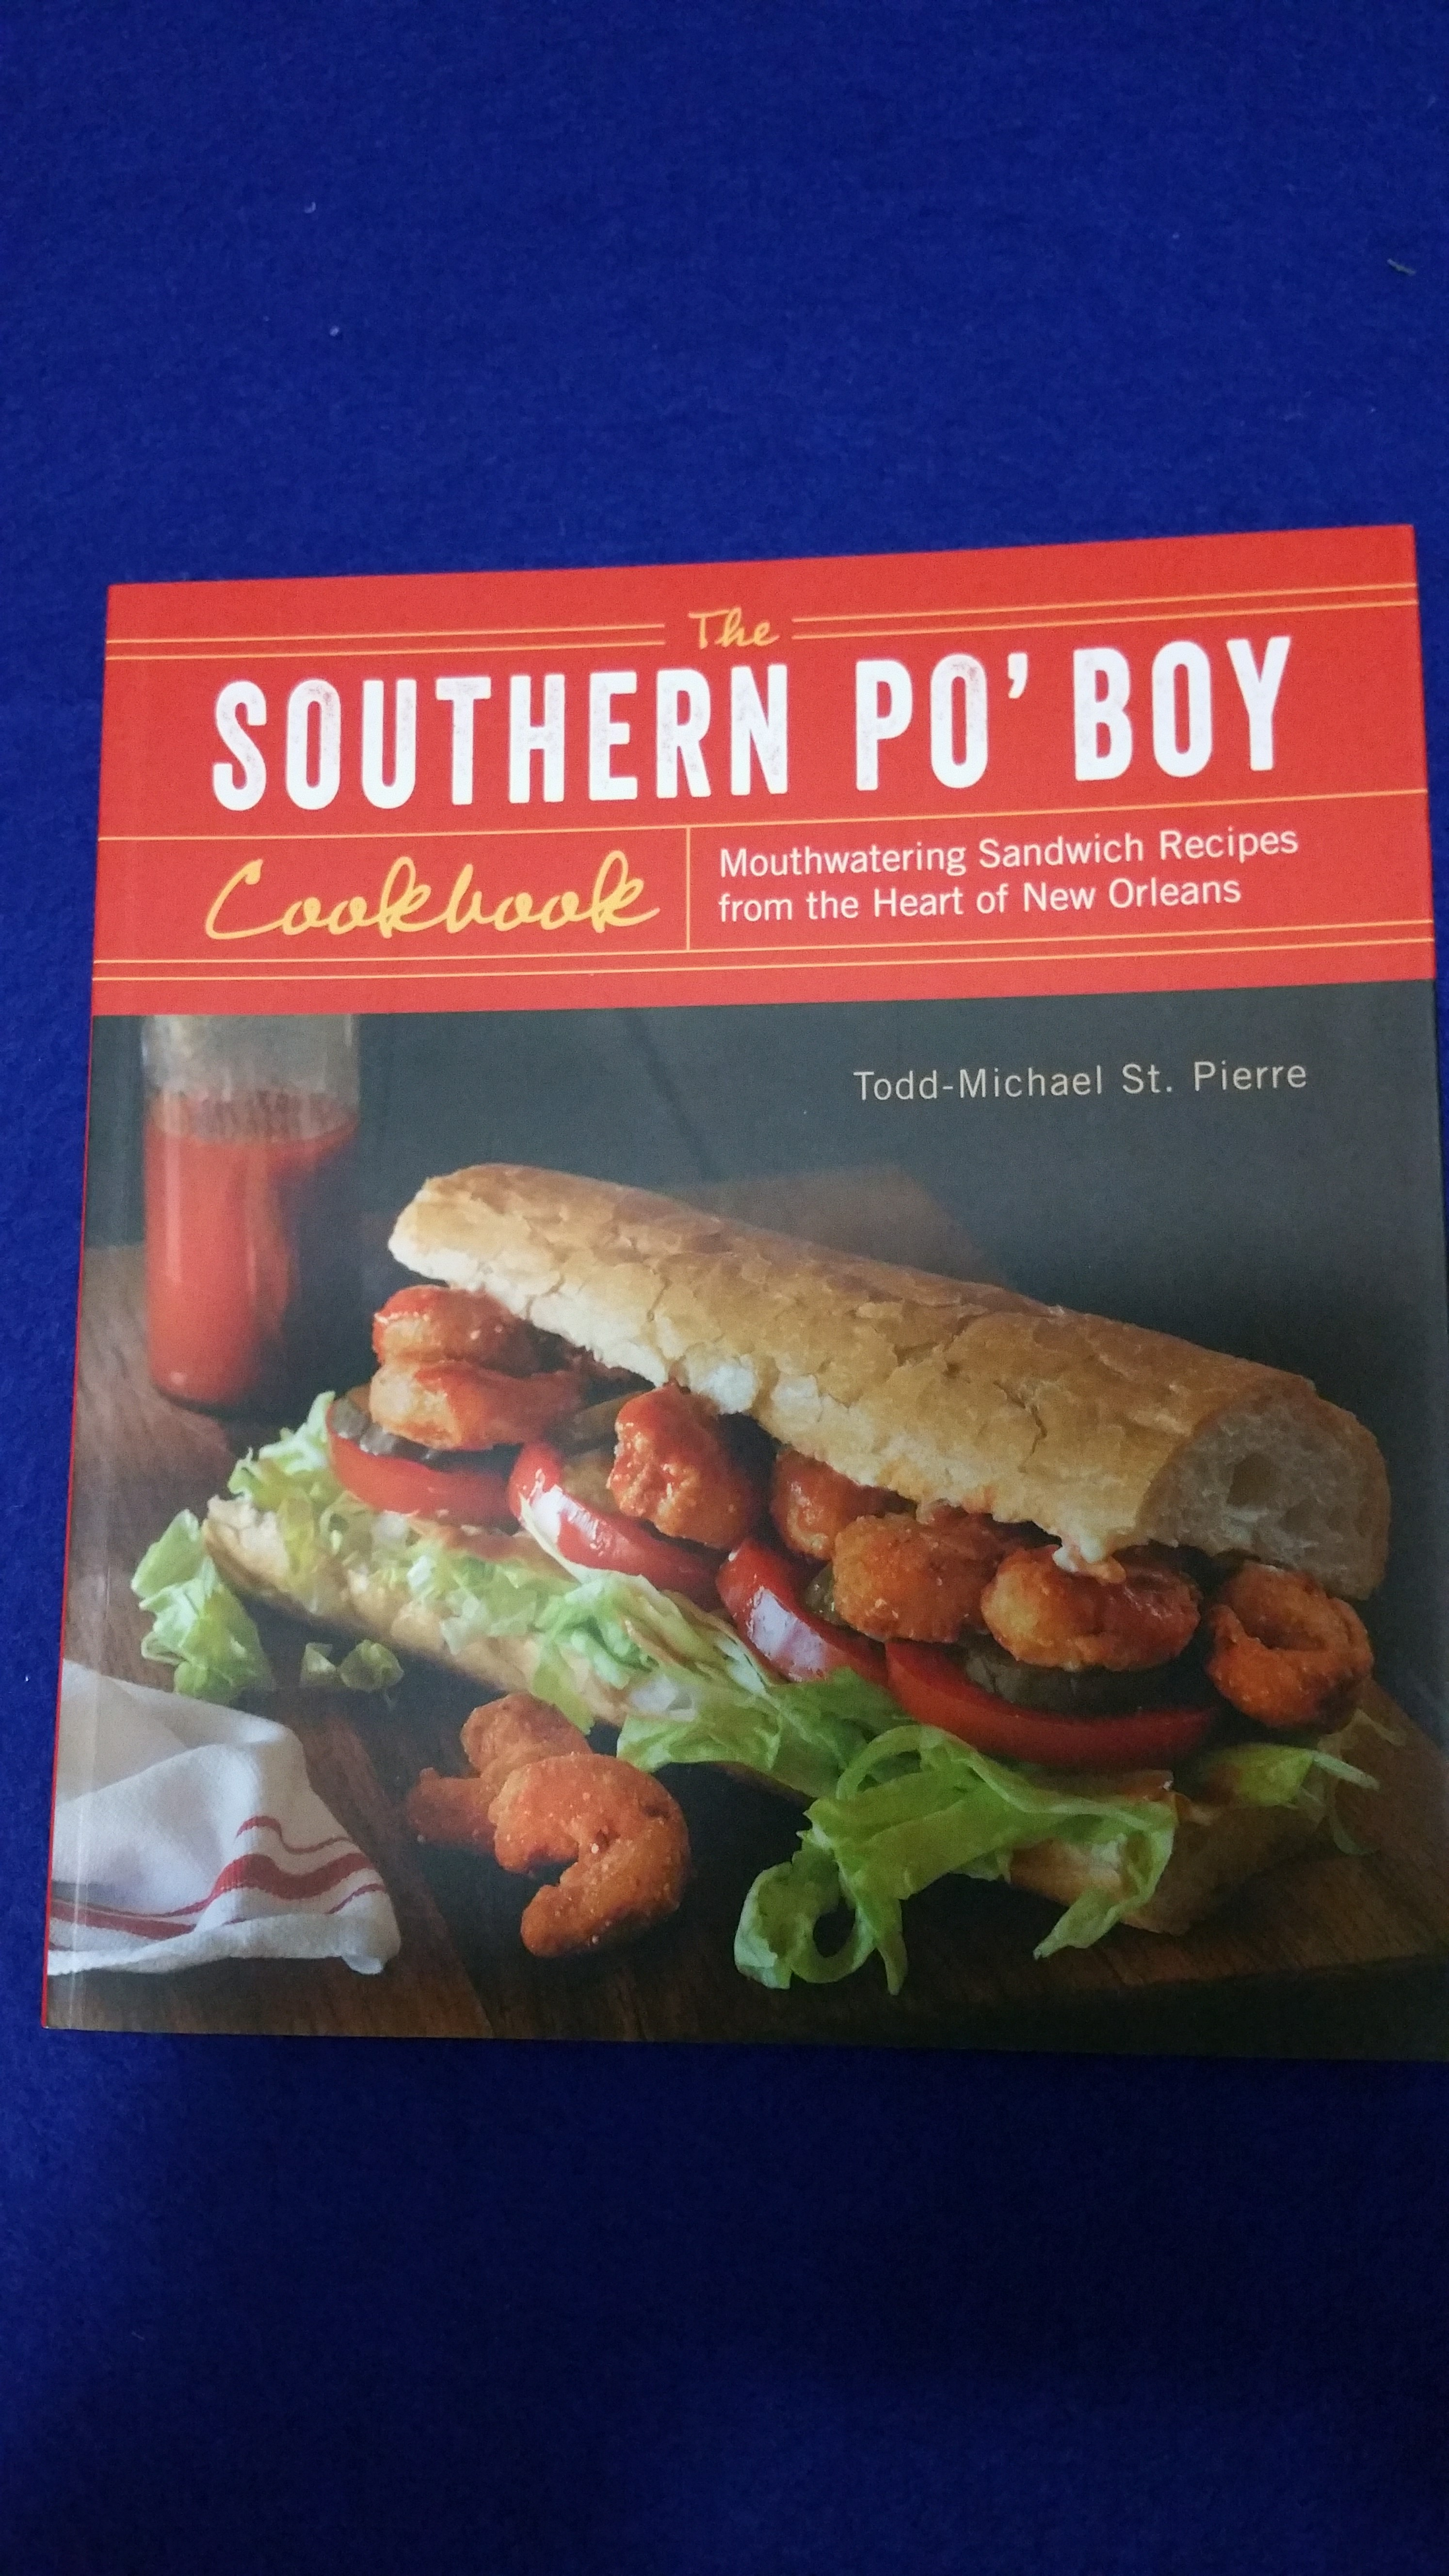 Kit Wohl - Po-Boy Cookbook